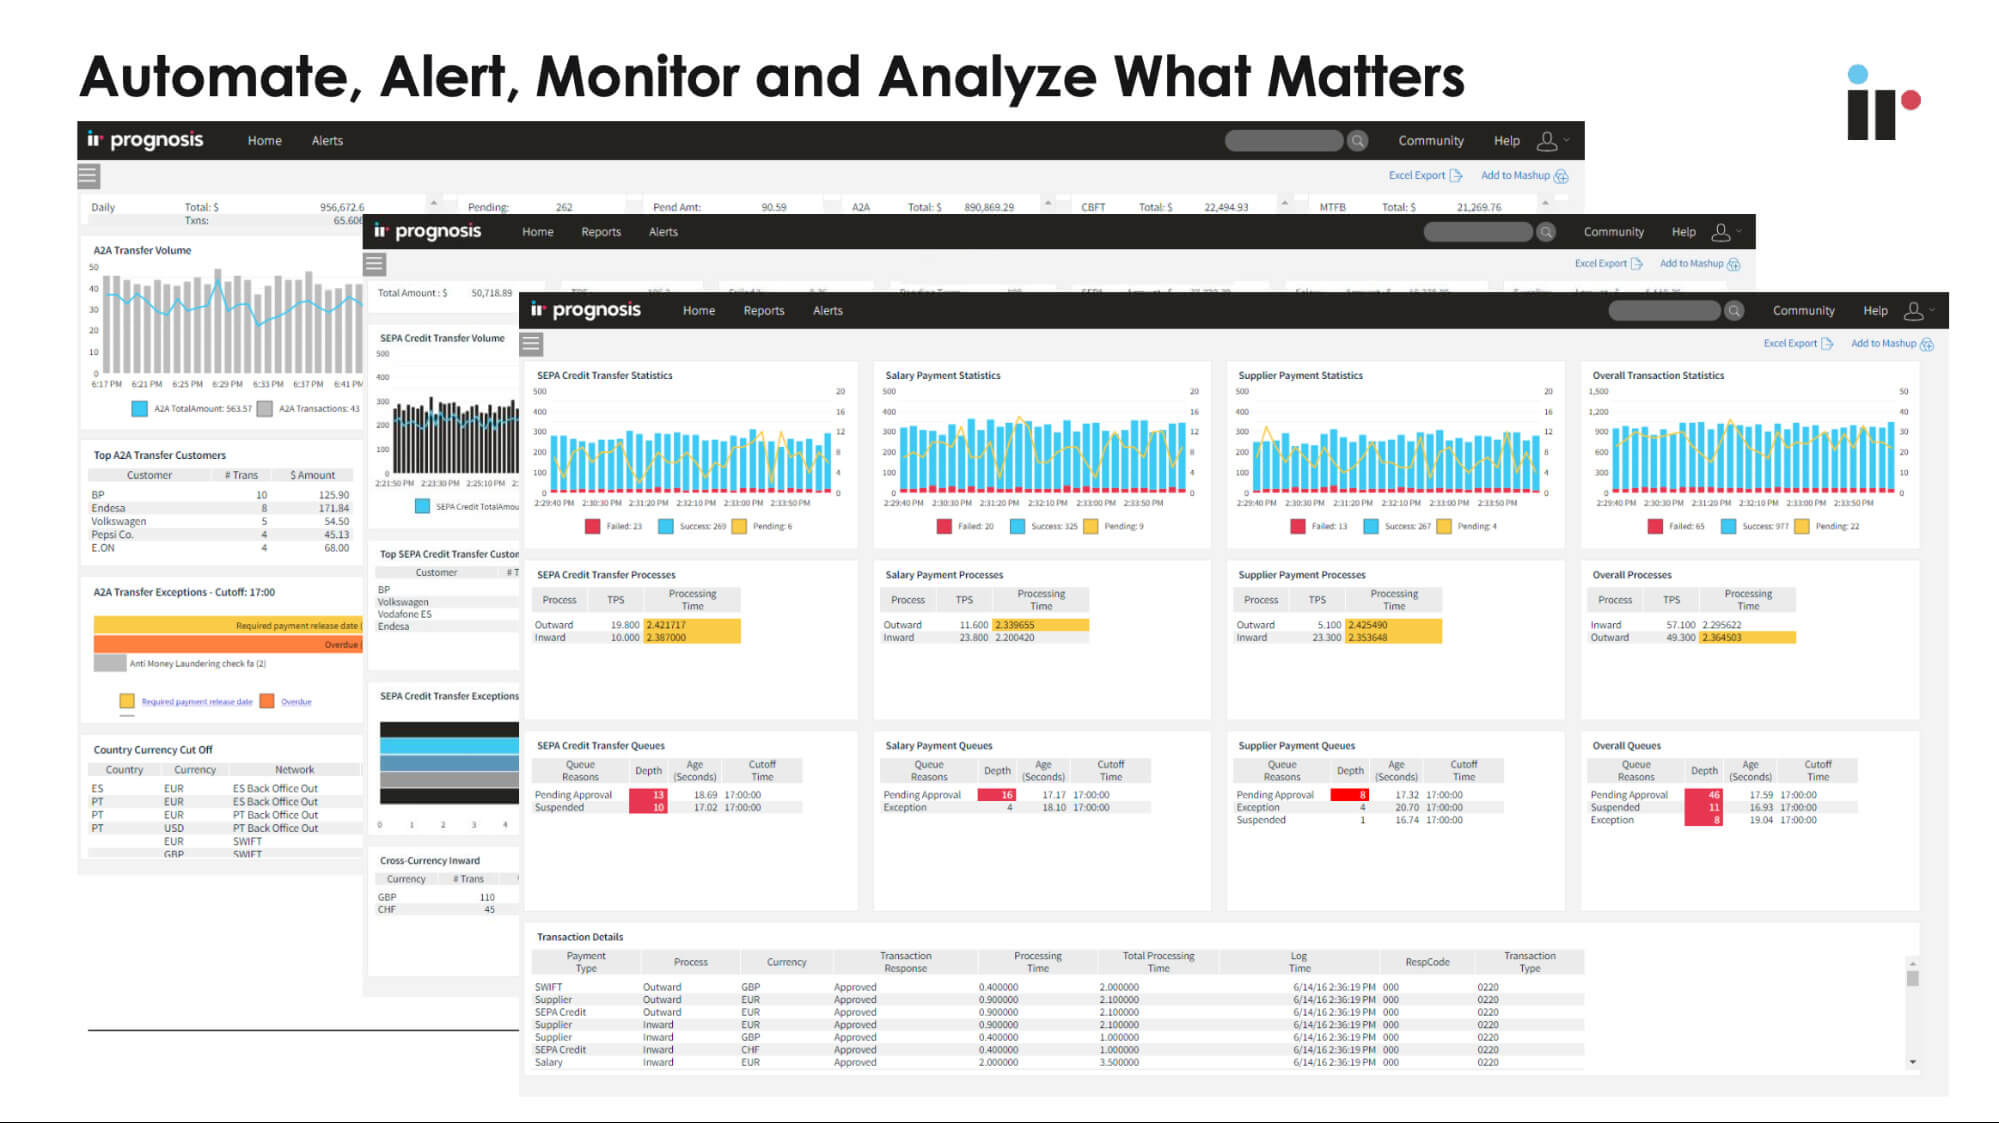 Automate, Alert, Monitor and Analyze what matters